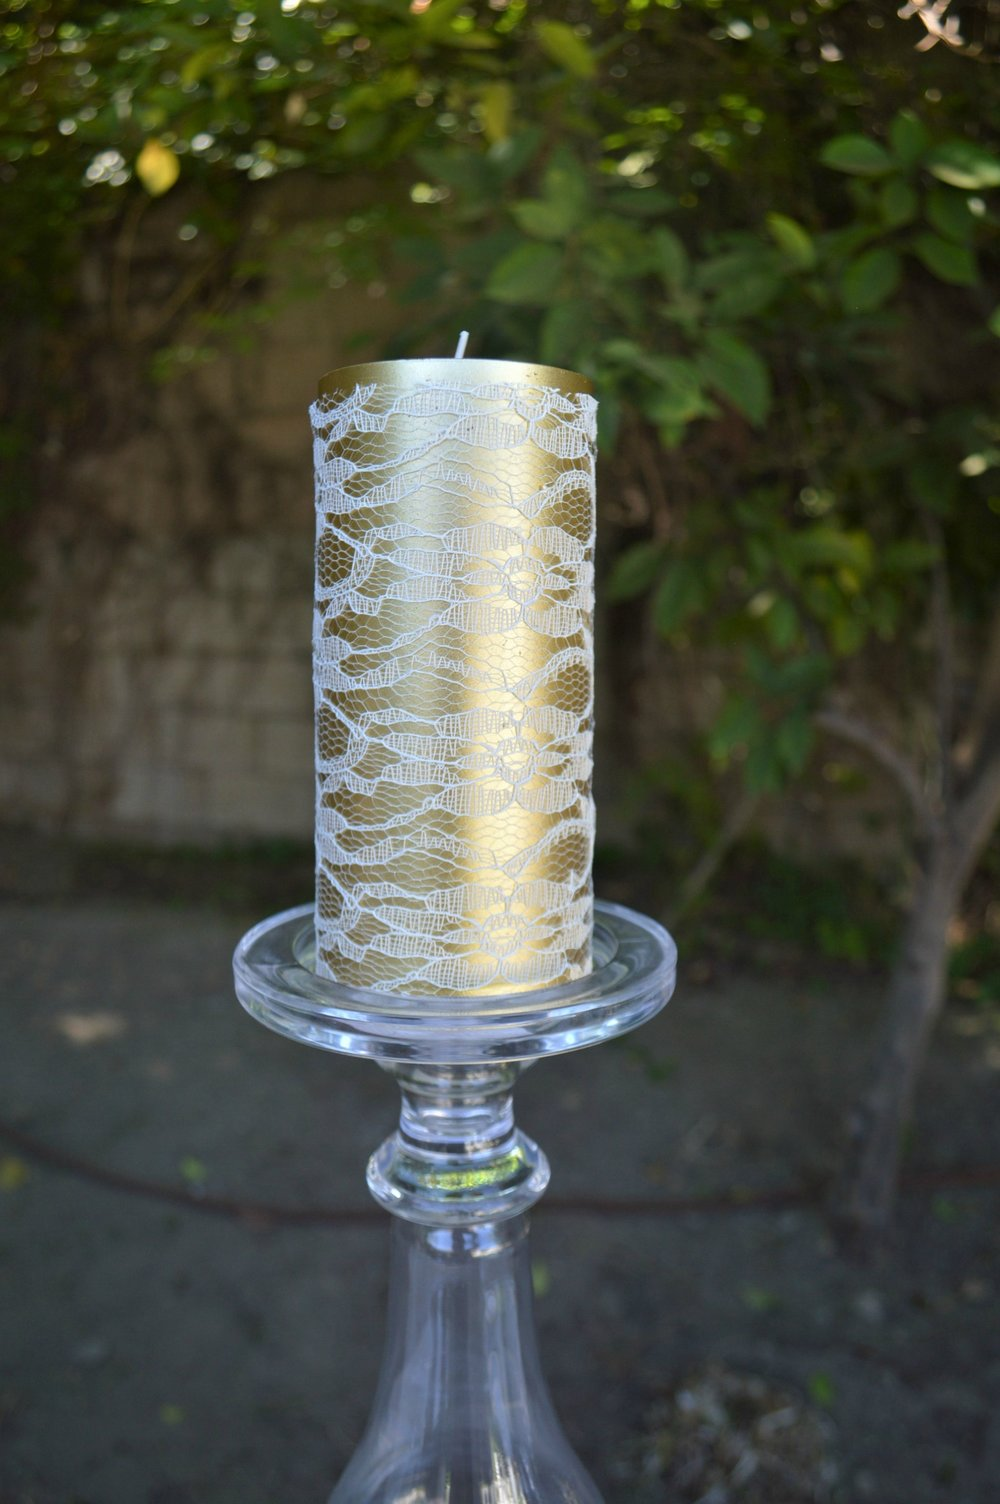 wedding candle-wedding candles ideas-wedding decor-backyard wedding-www.SugarPartiesLA.com.jpg